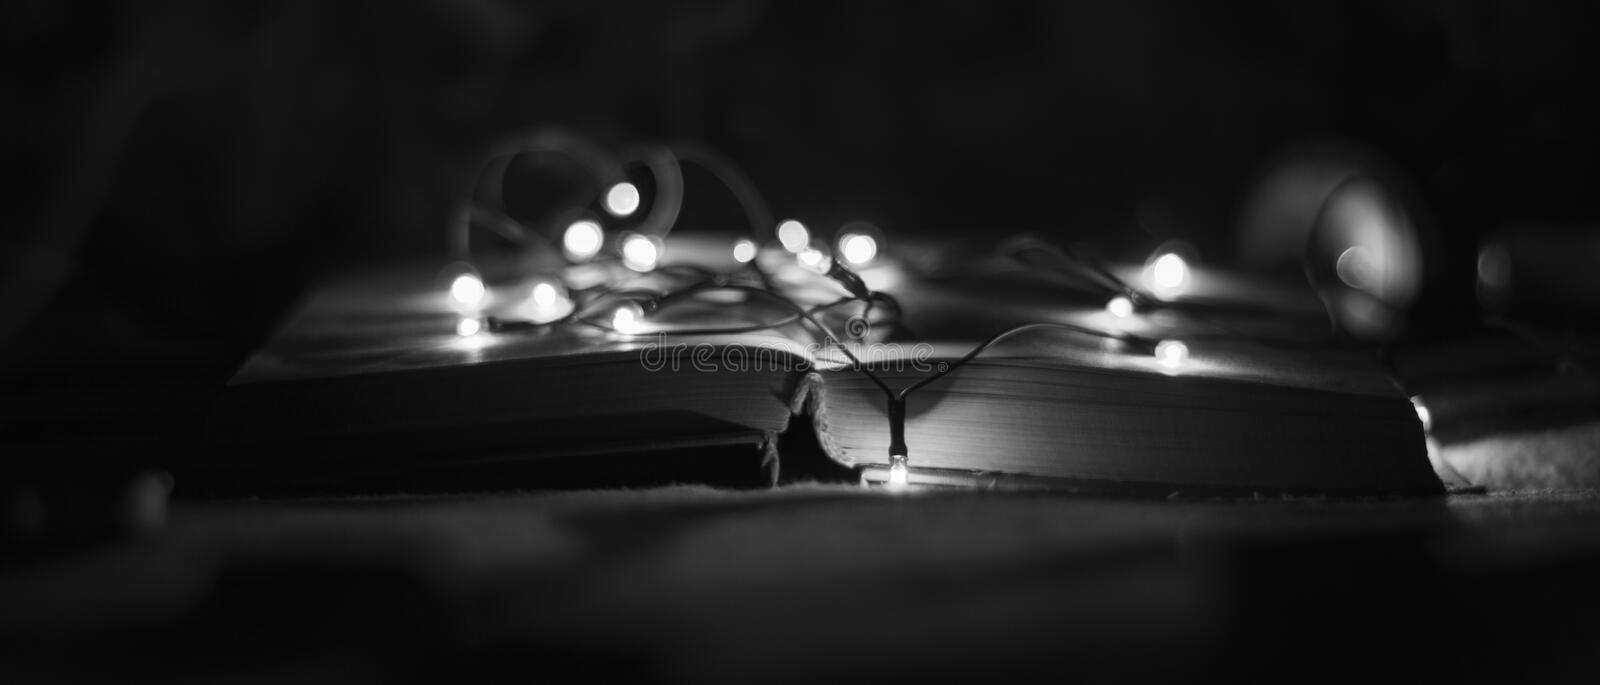 Open book with lights garlands in a black and white style royalty free stock photos